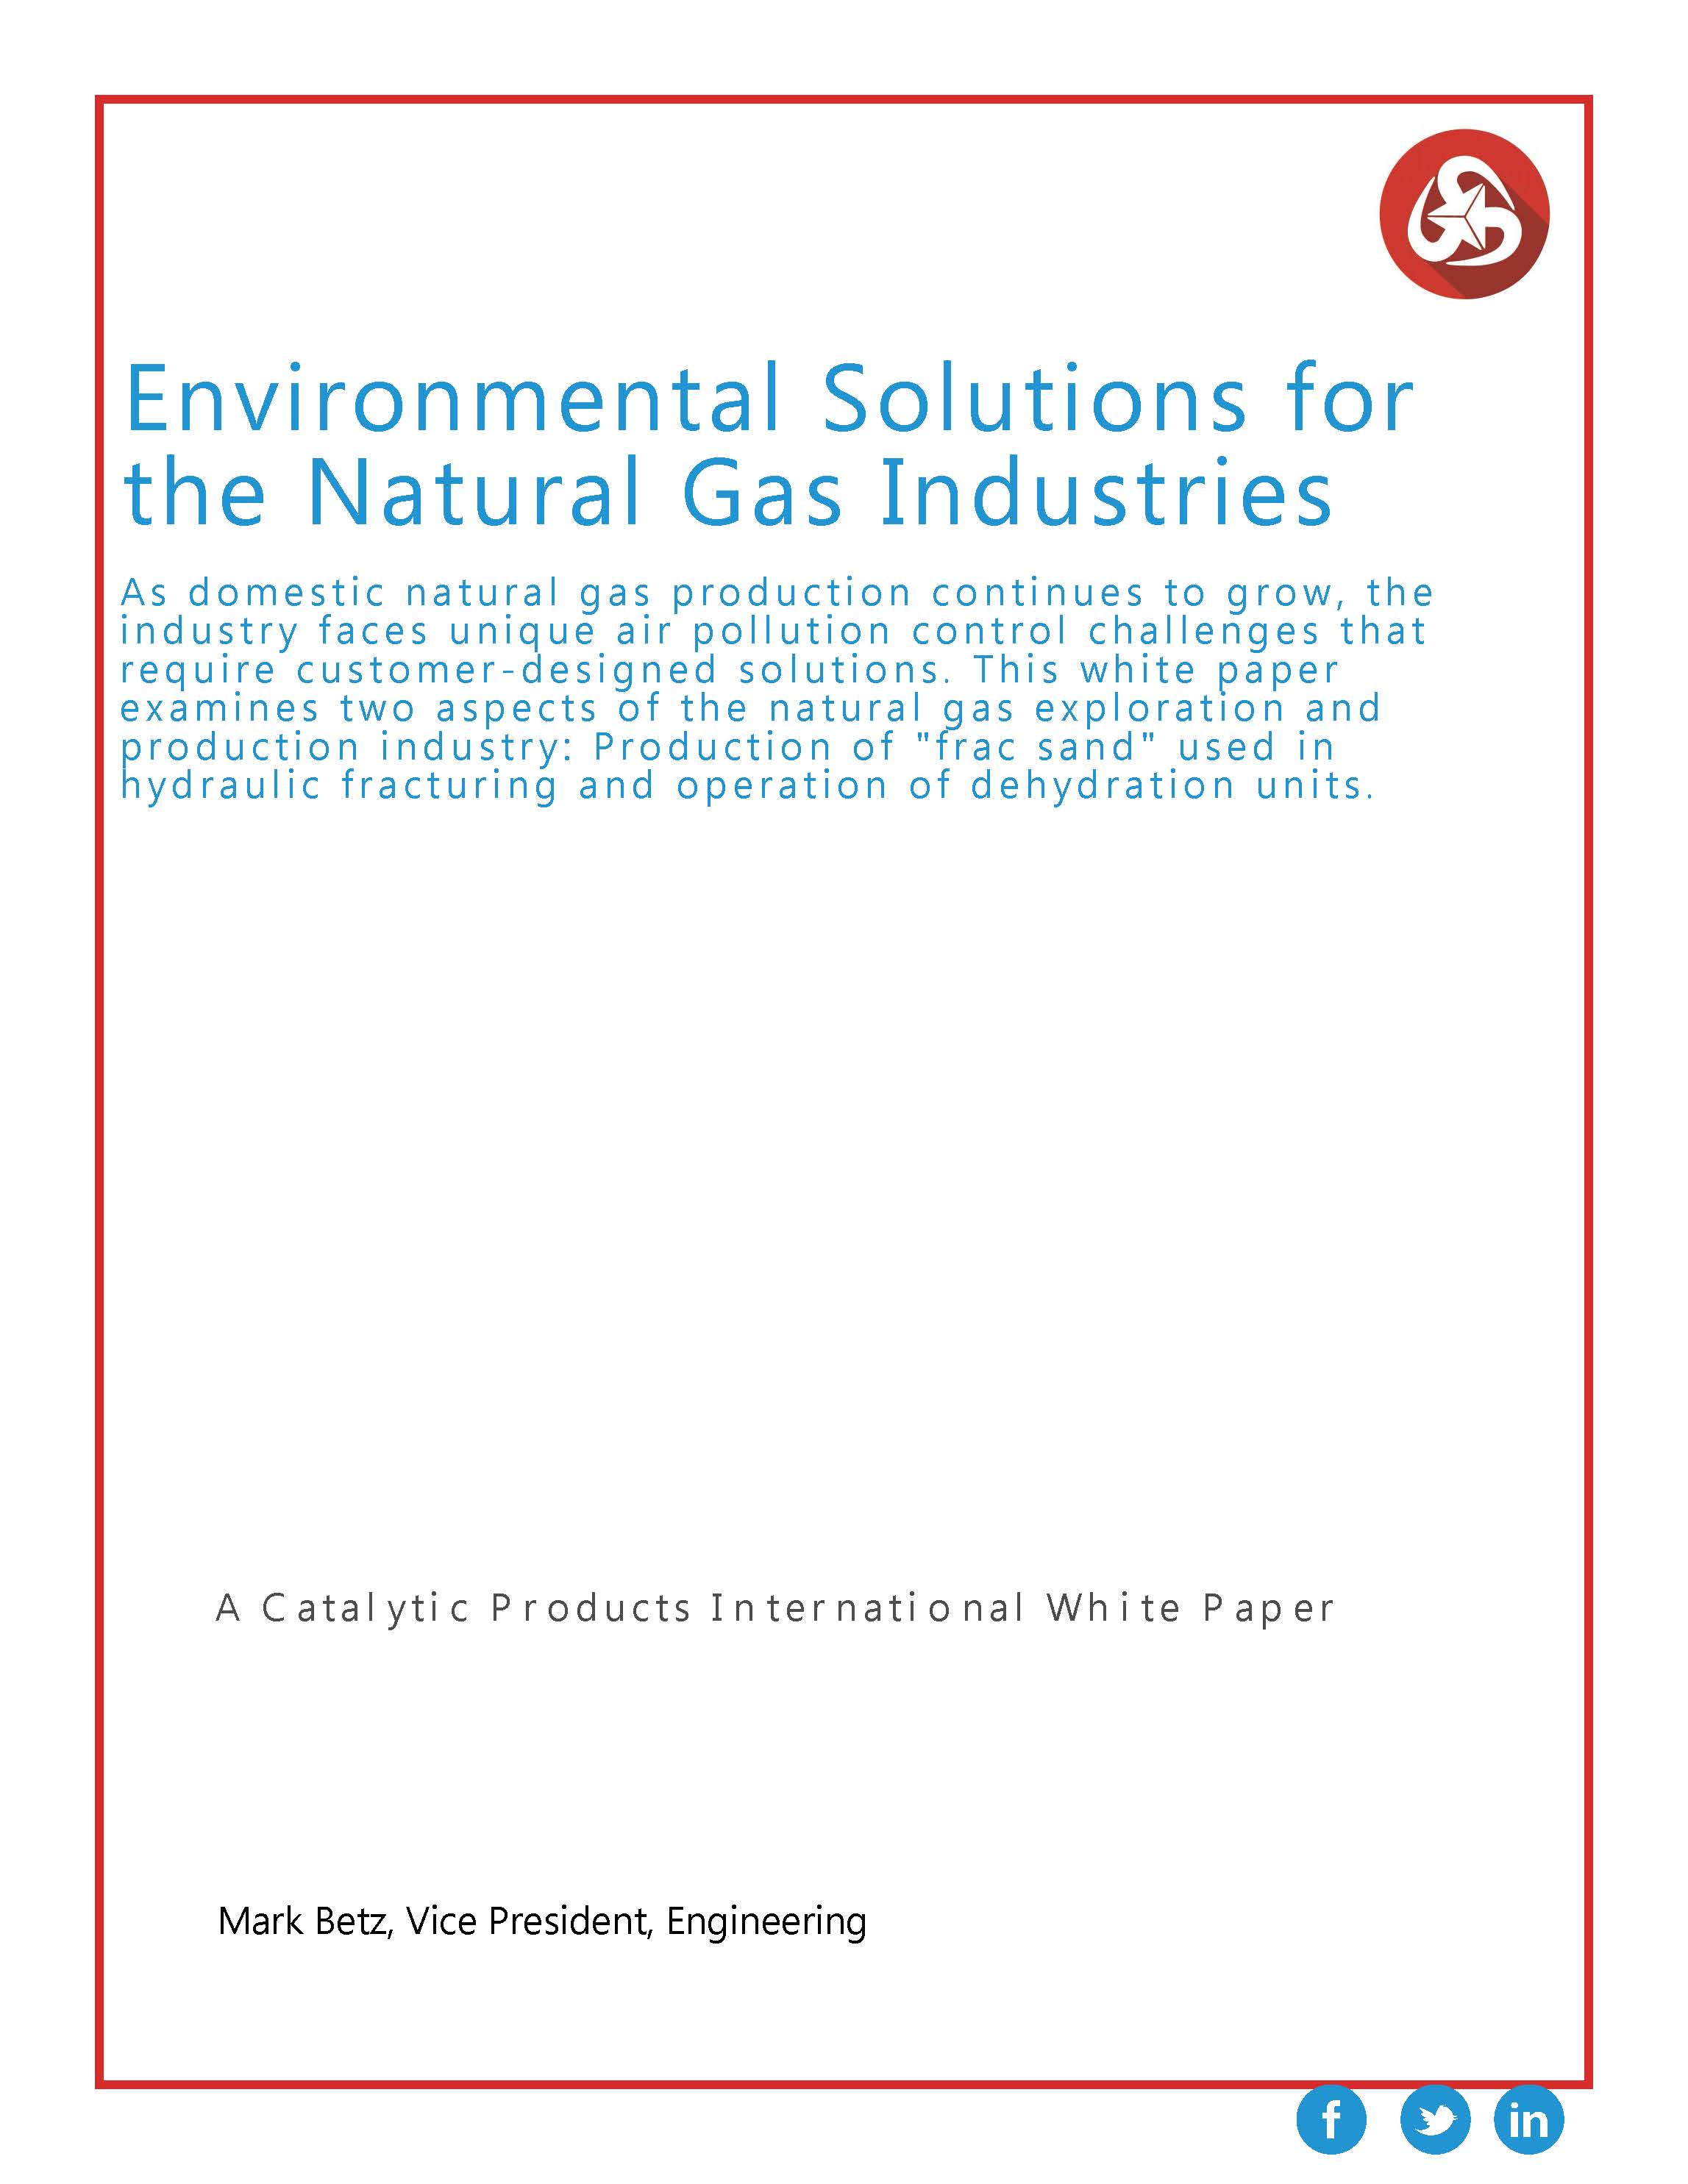 2014_Environmental_Solutions_for_Natural_Gas_Industries